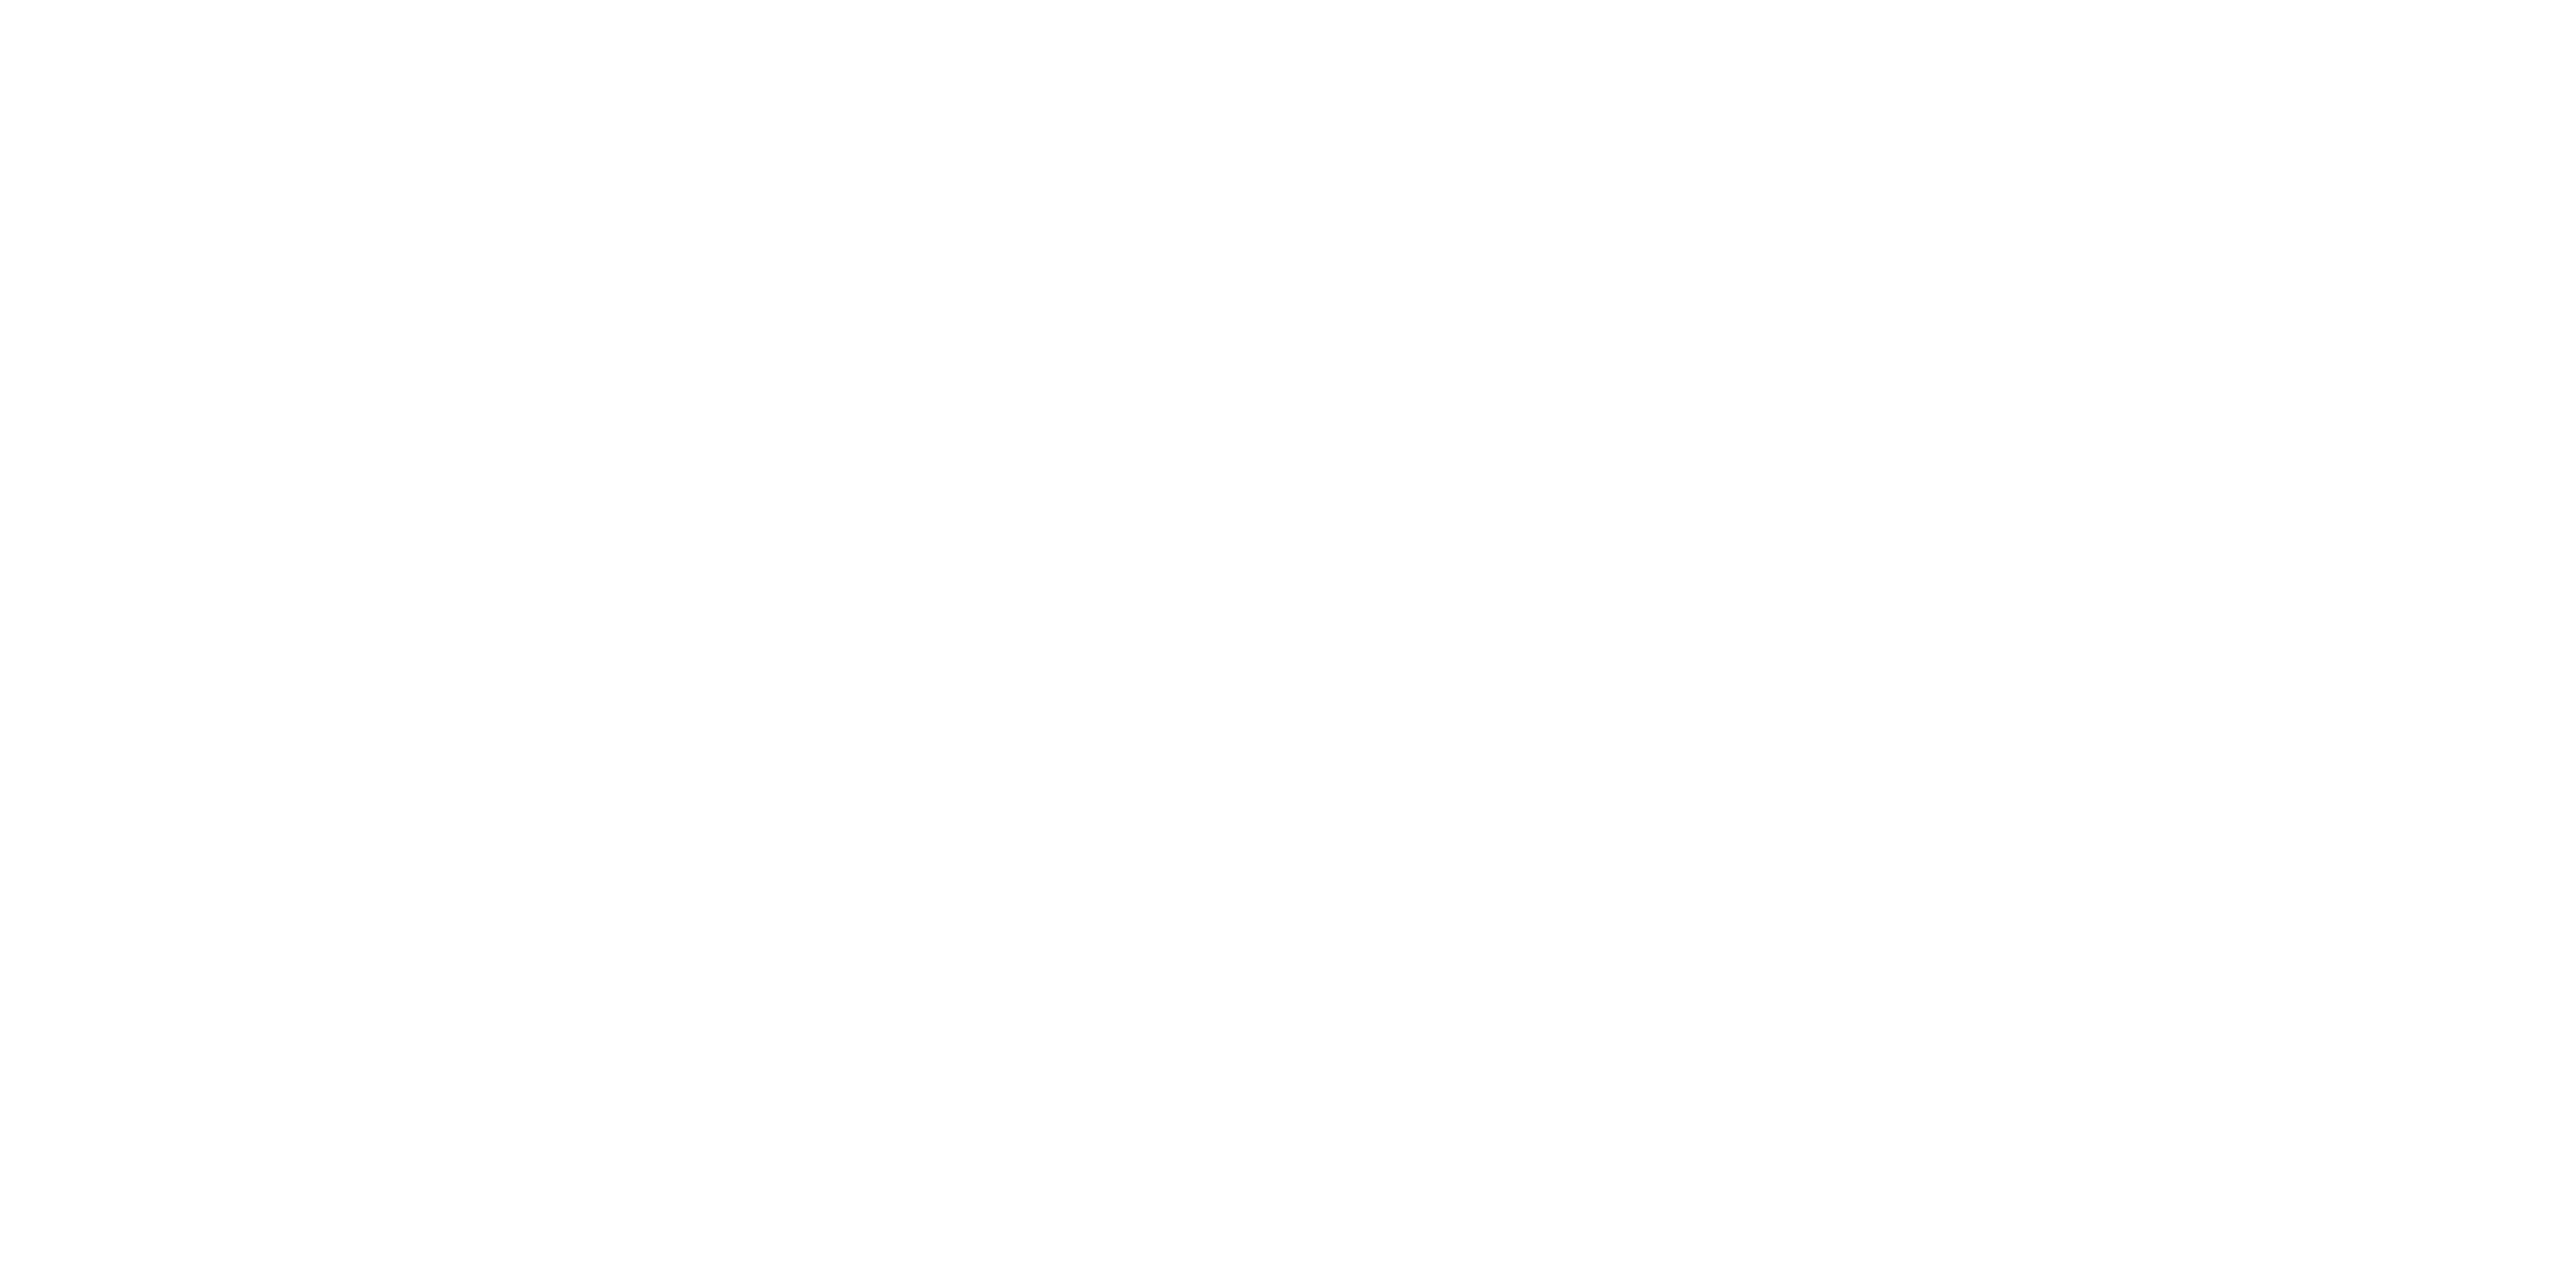 Brewers of Oregon's Favorite Craft Beer